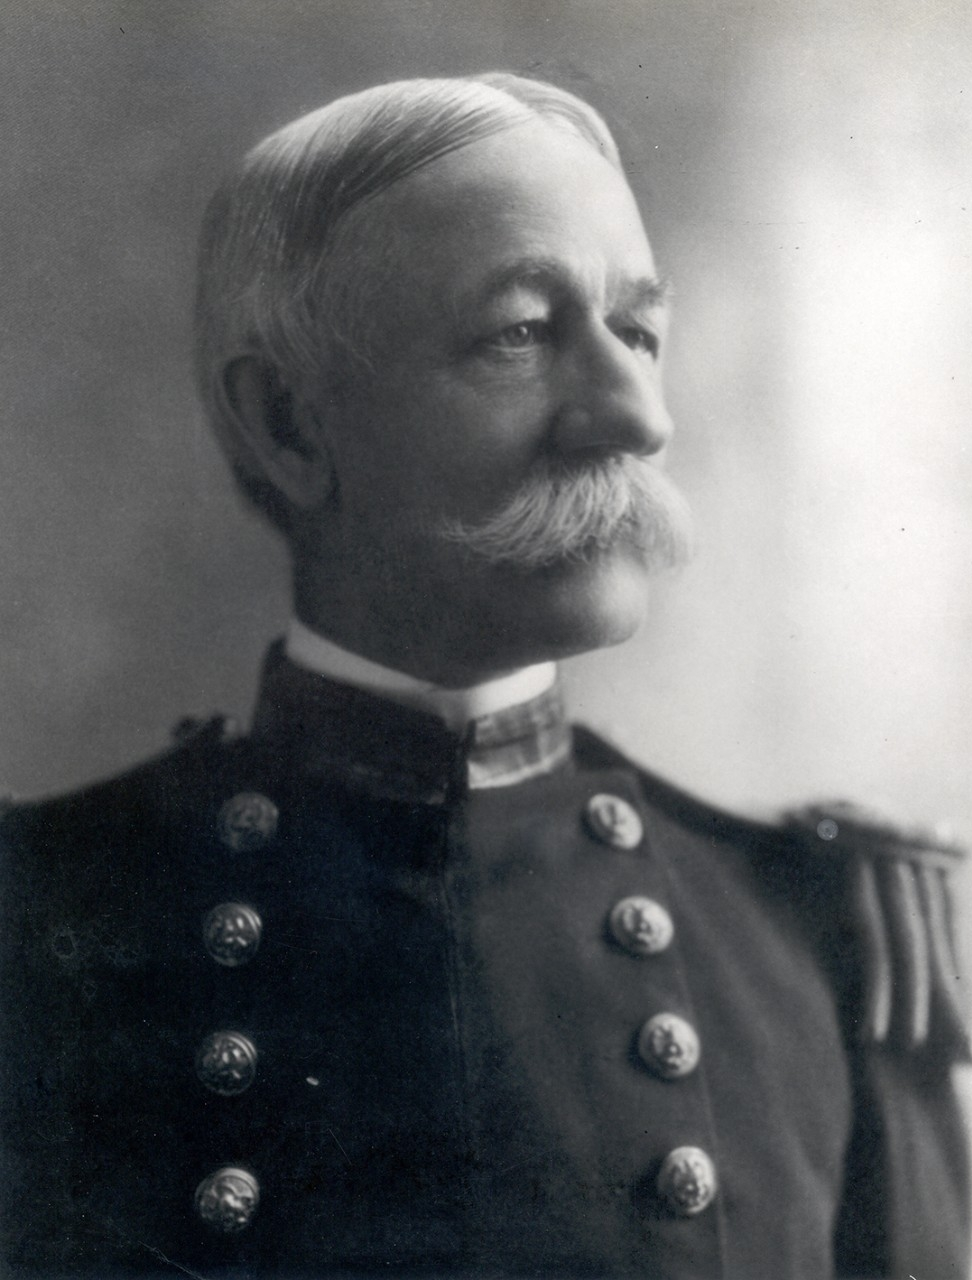 On April 7, 1898, President William McKinley broke precedence and appointed Mordecai Endicott to become the first member of the Civil Engineer Corps to command the Bureau of Yards and Docks. He was immediately elevated to the rank of Commodore and later Rear Admiral. Endicott became the first Chief to hold the rank of Rear Admiral, one which has been held by all Chiefs of the Bureau ever since. He was reappointed Chief in 1902 and again in 1906.